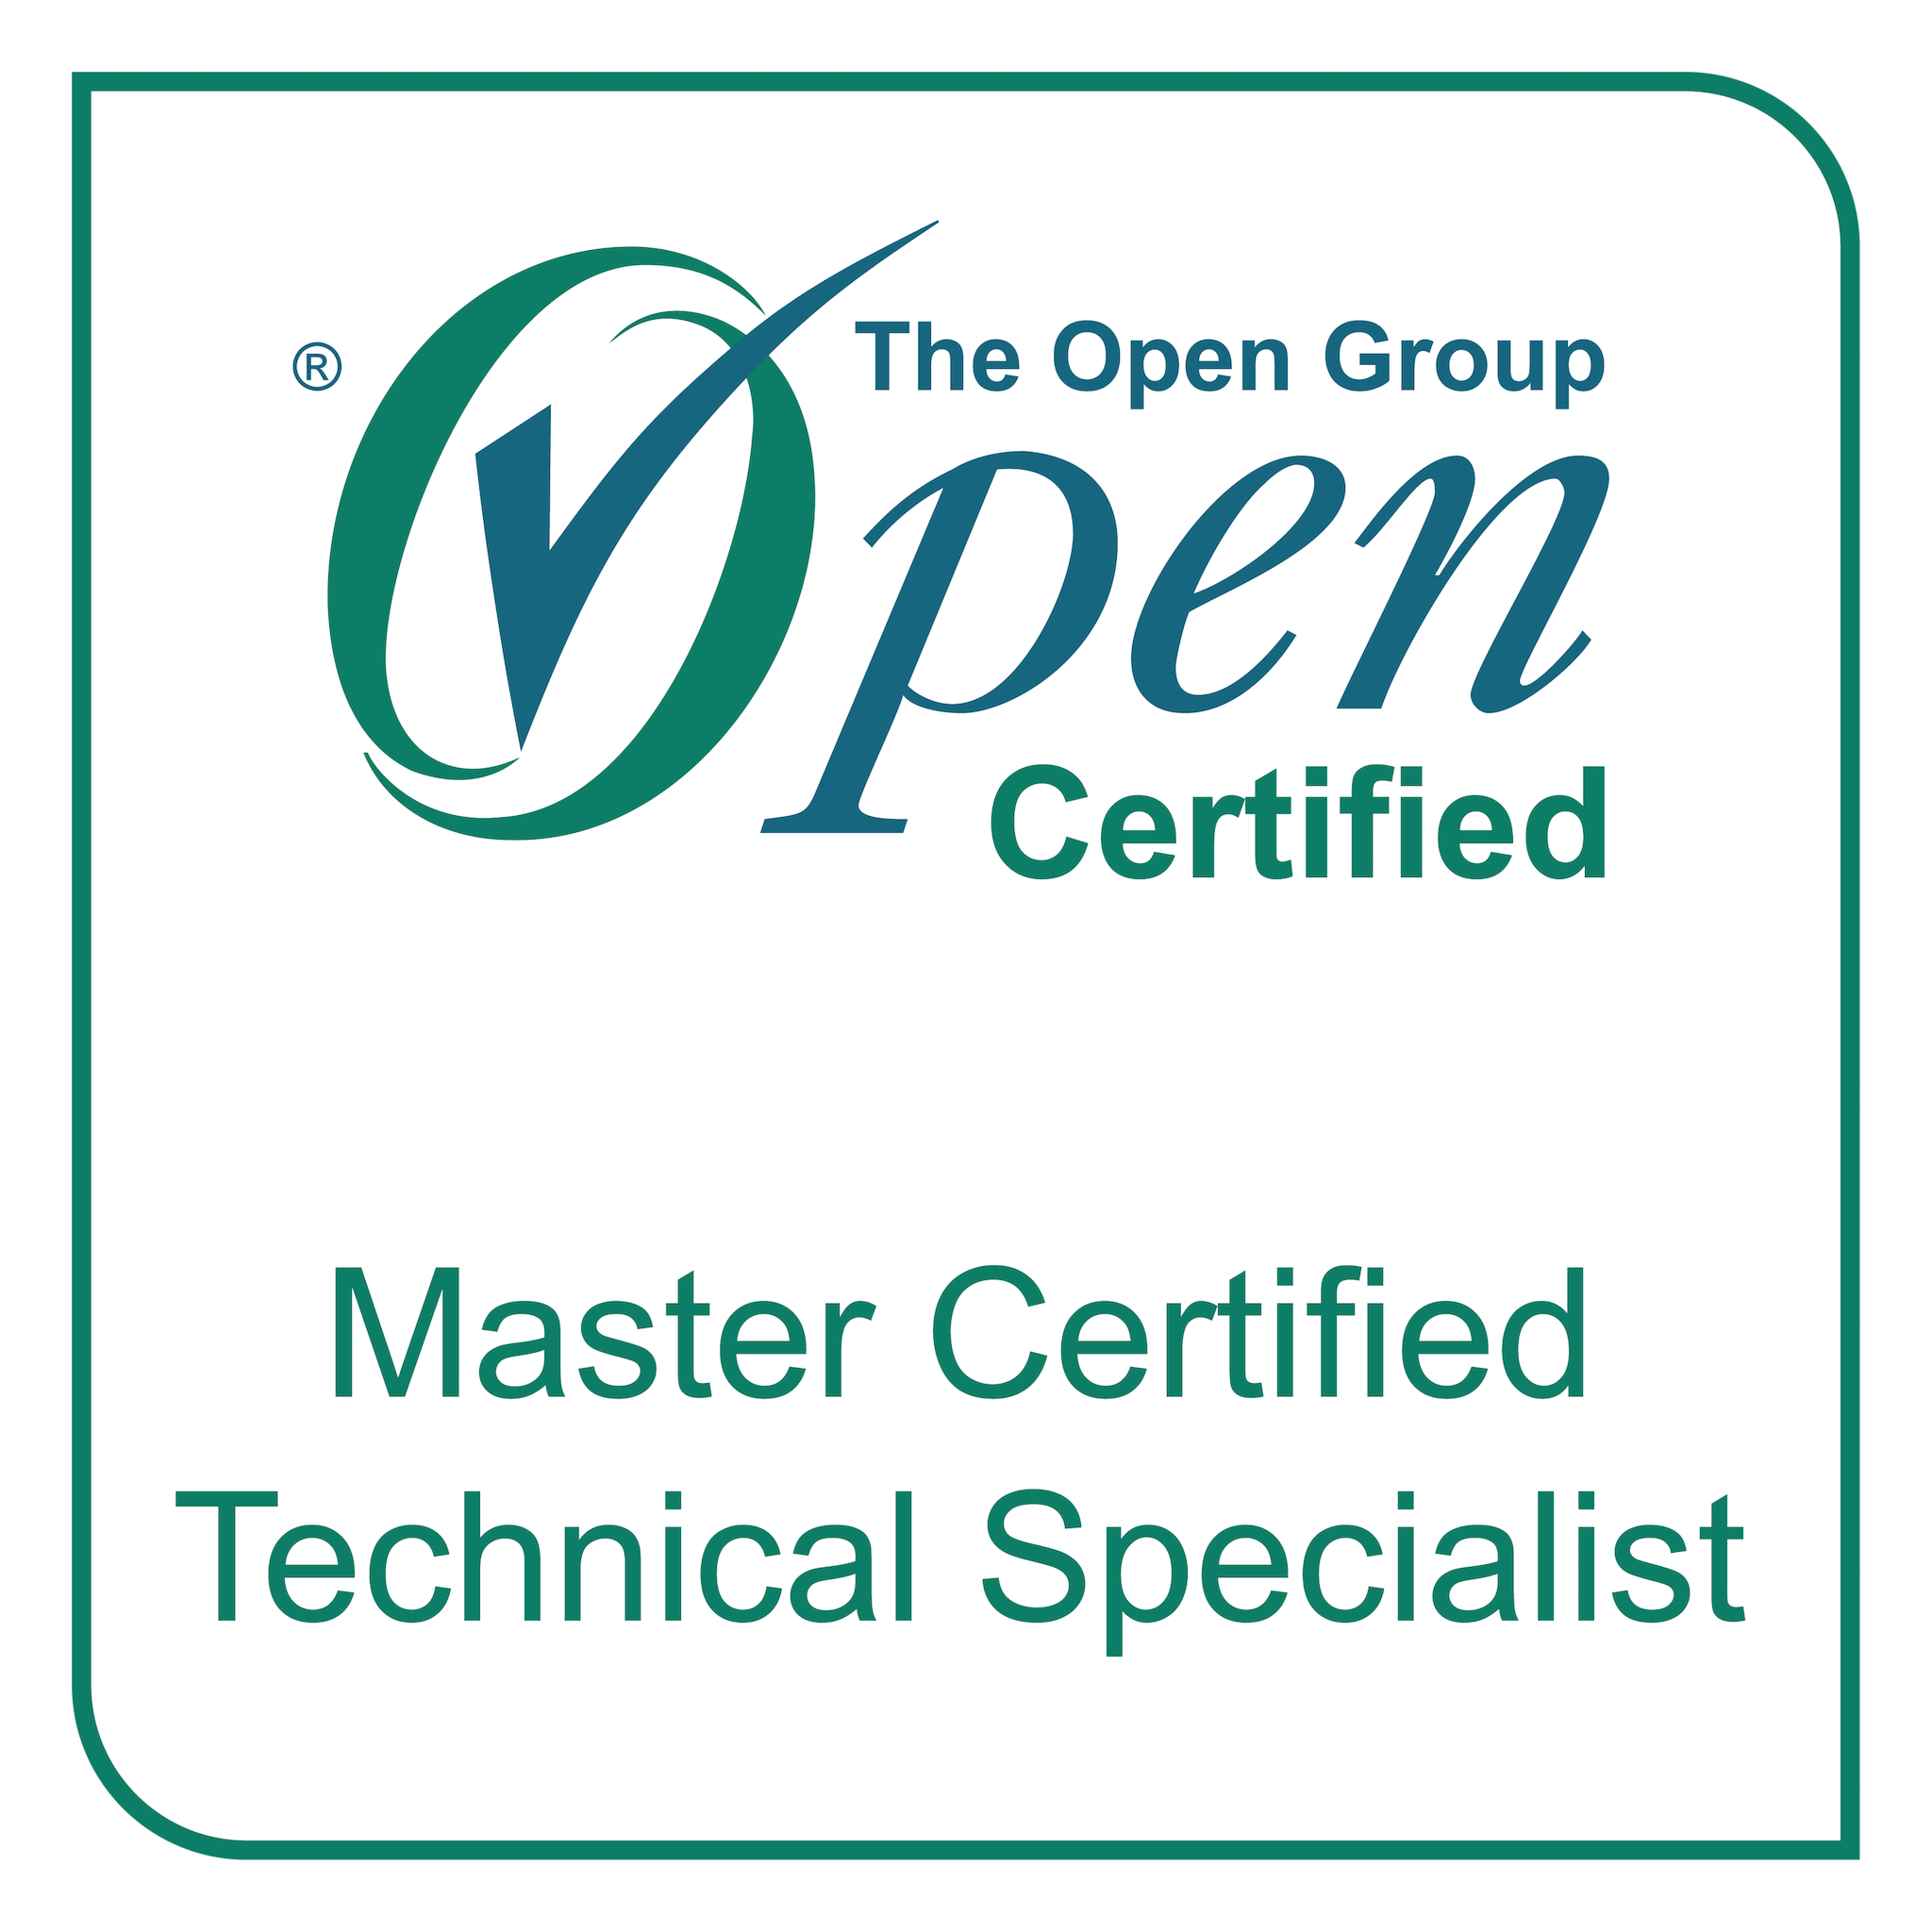 Professional Certification: Master Certified Technical Specialist, Testing